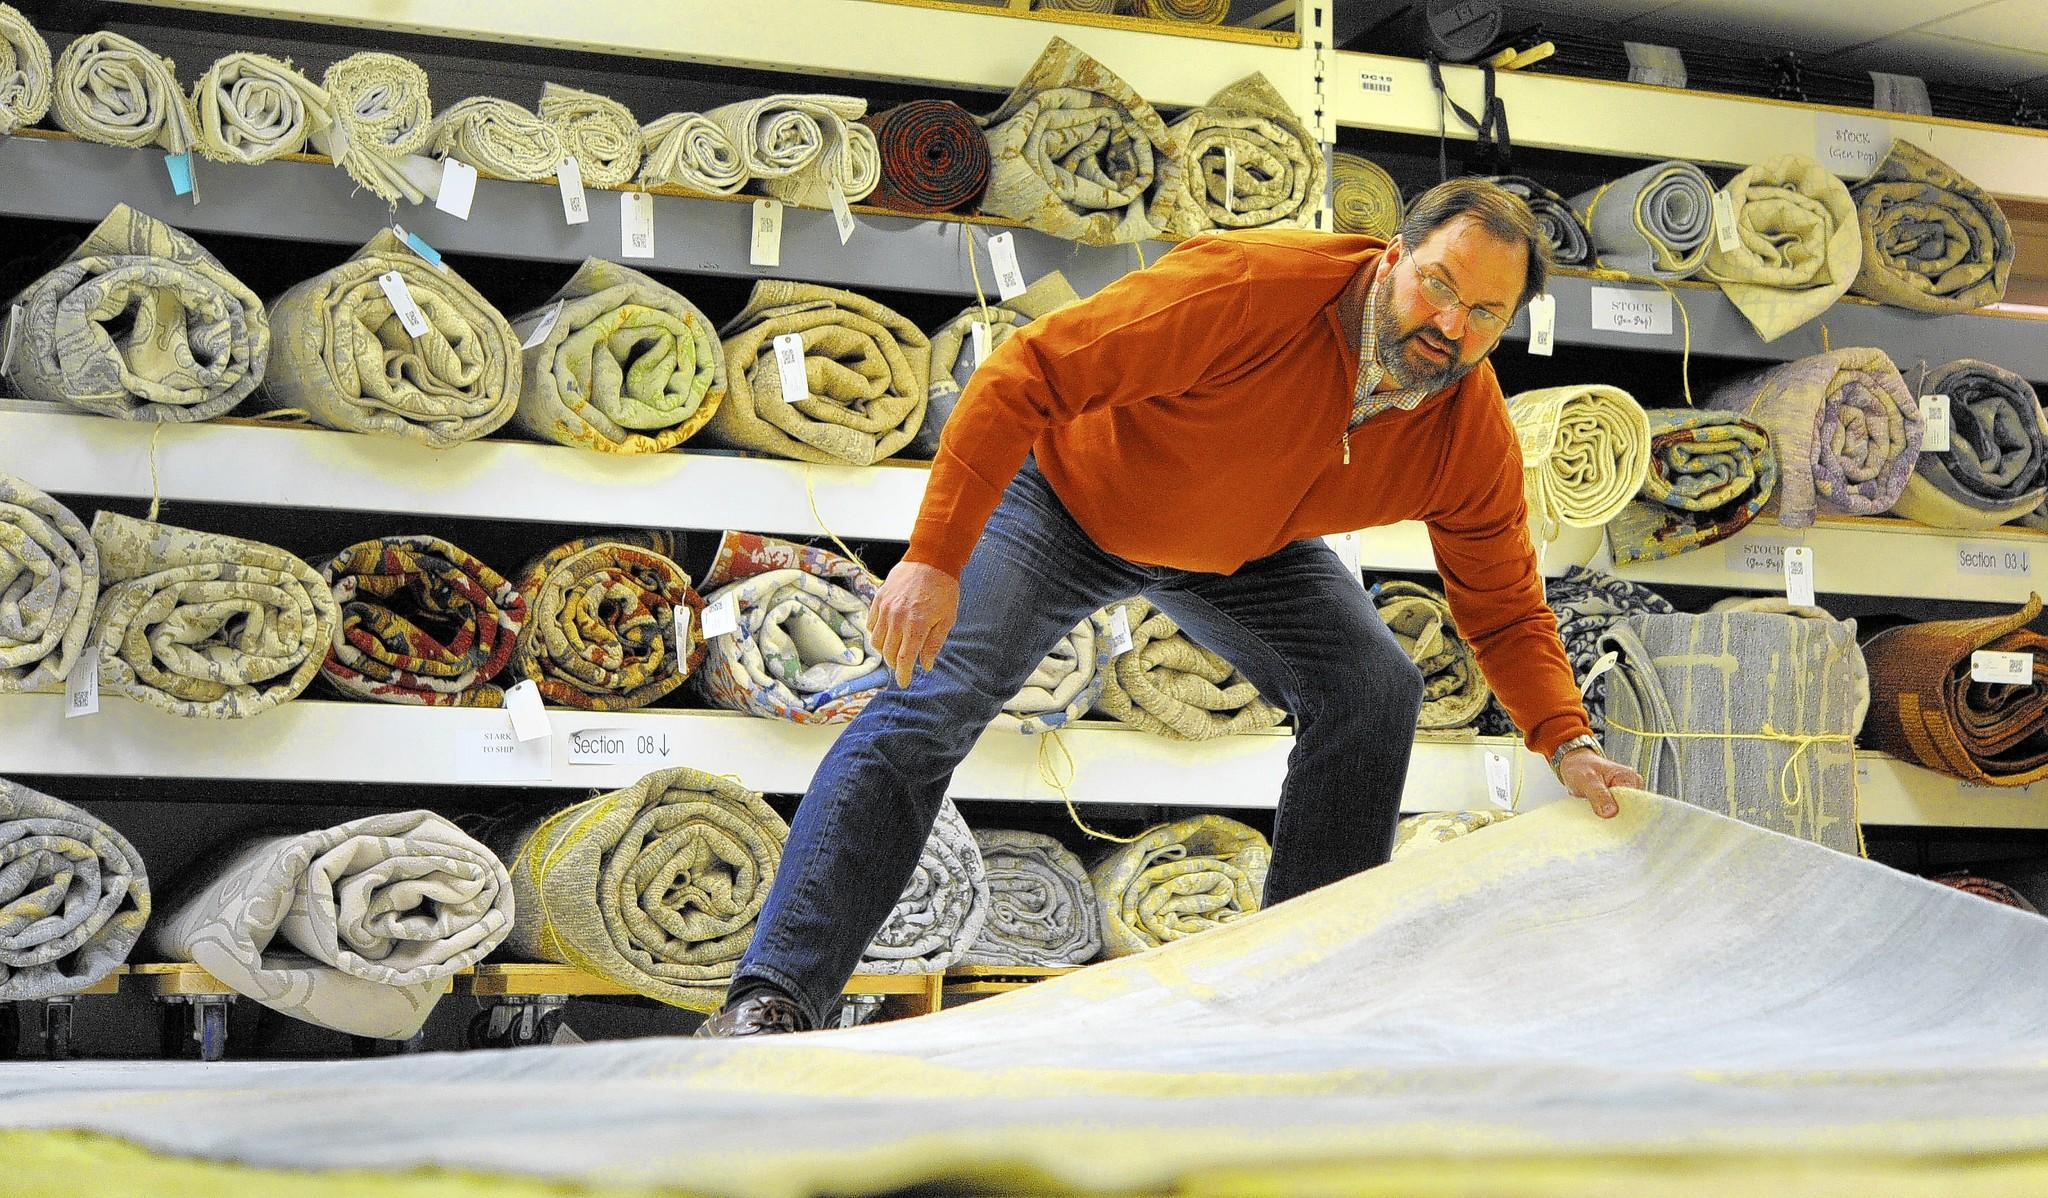 Founder of Baltimore-based Tamarian Carpets has Steve Cibor was given a prestigious award in Nepal as a Top Exporter, marking the first time an American has won the recognition.